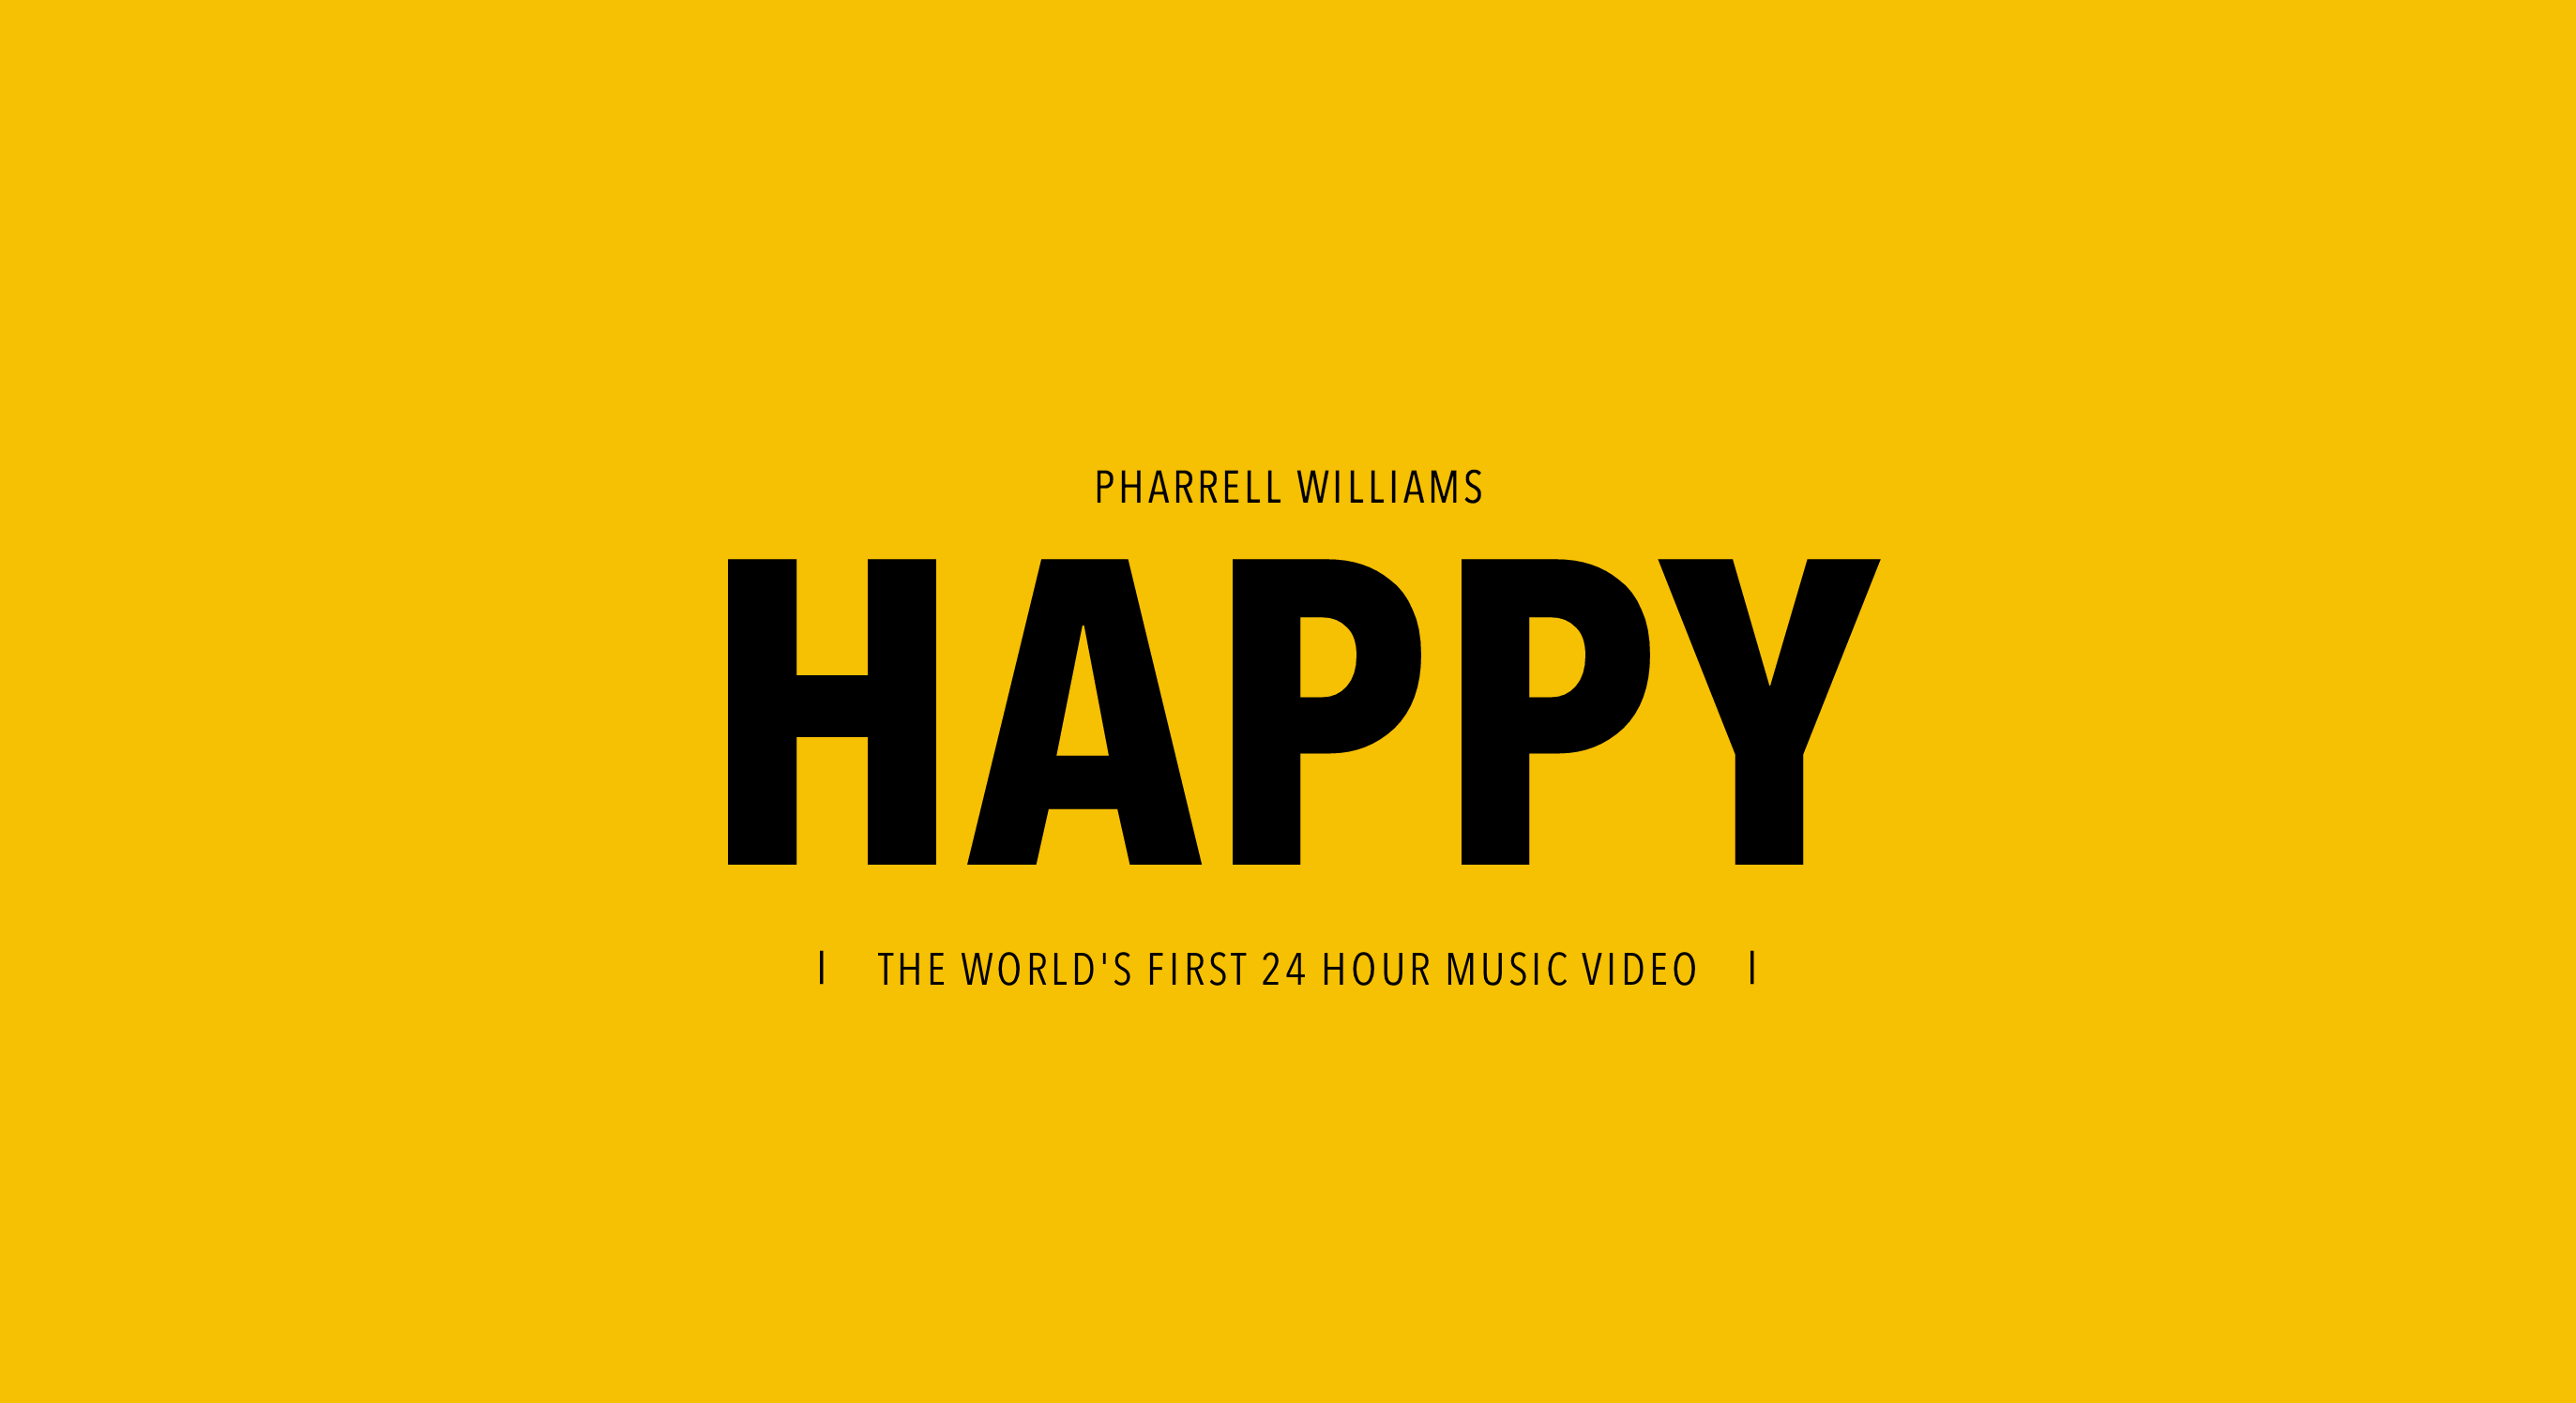 24 hours of #happy http://24hoursofhappy.com/